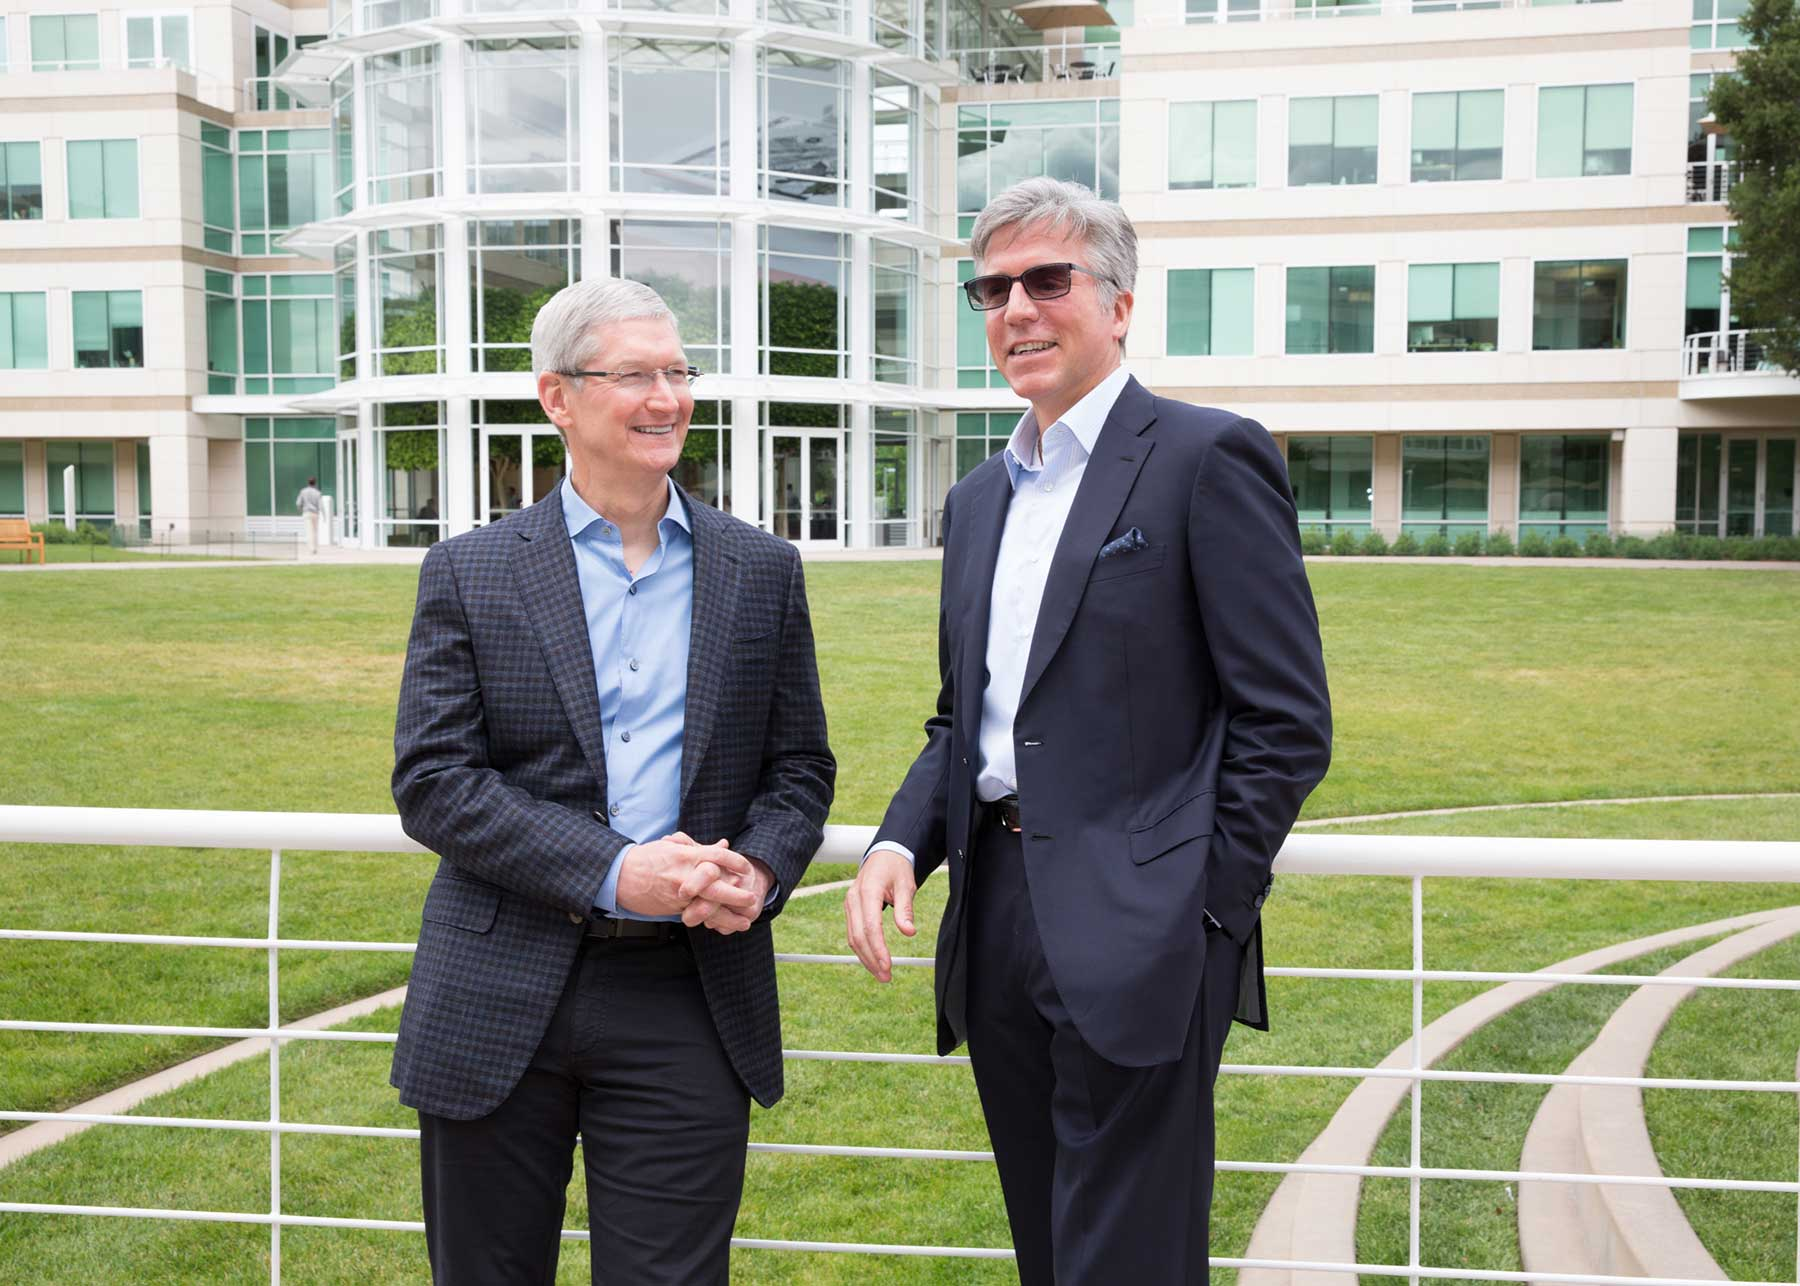 Apple CEO Tim Cook and SAP CEO Bill McDermott meet at Apple's campus in Cupertino to announce a new partnership to revolutionize work on iPhone and iPad.